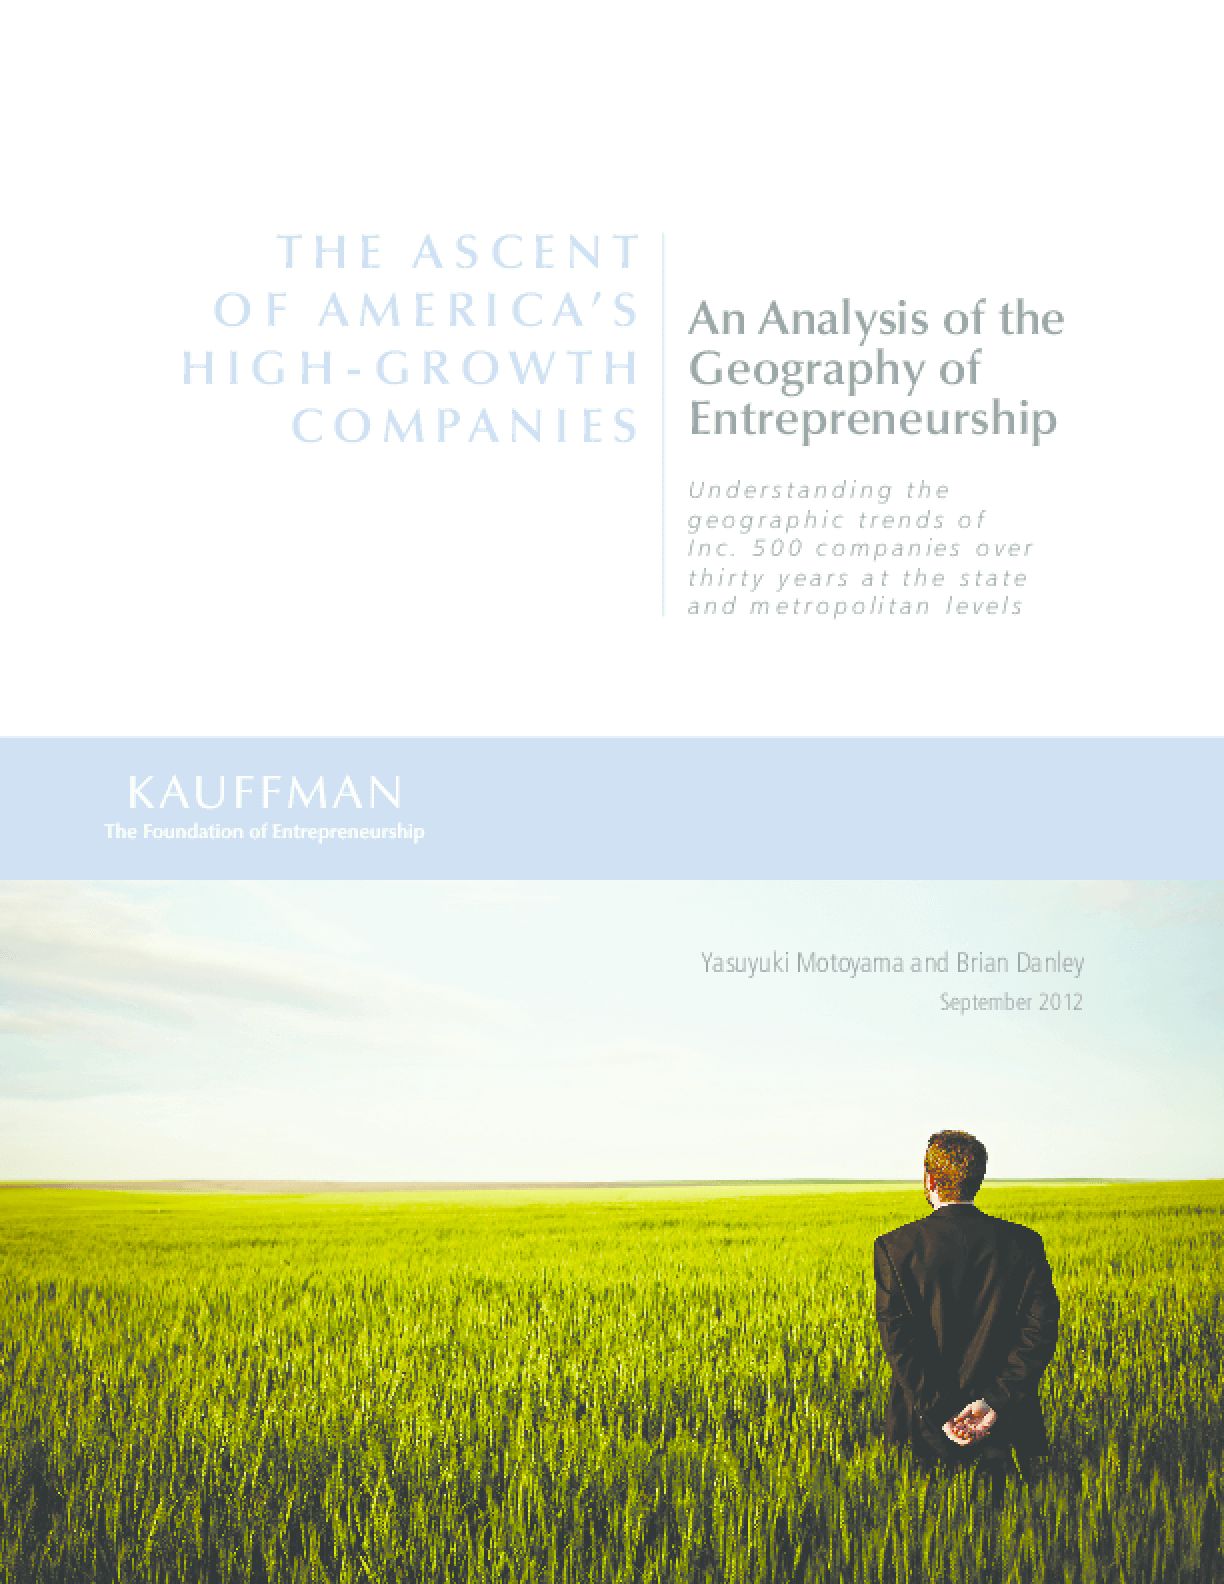 The Ascent of America's High-Growth Companies: An Analysis of the Geography of Entrepreneurship